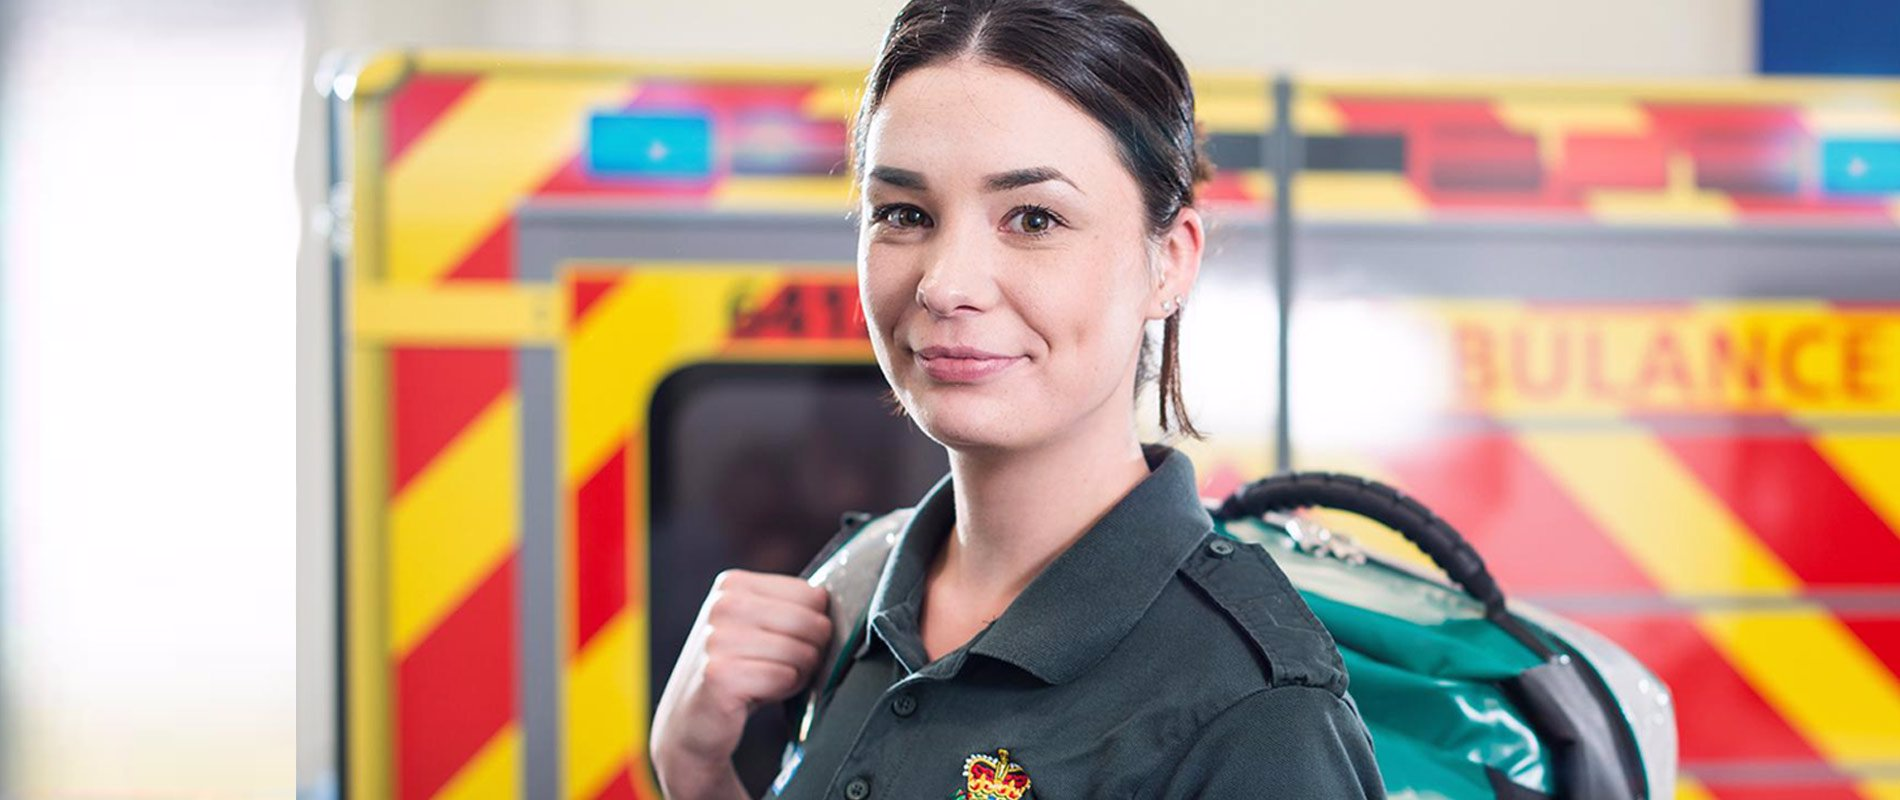 Sally-Jean-McKee-Paramedic-Science-centred